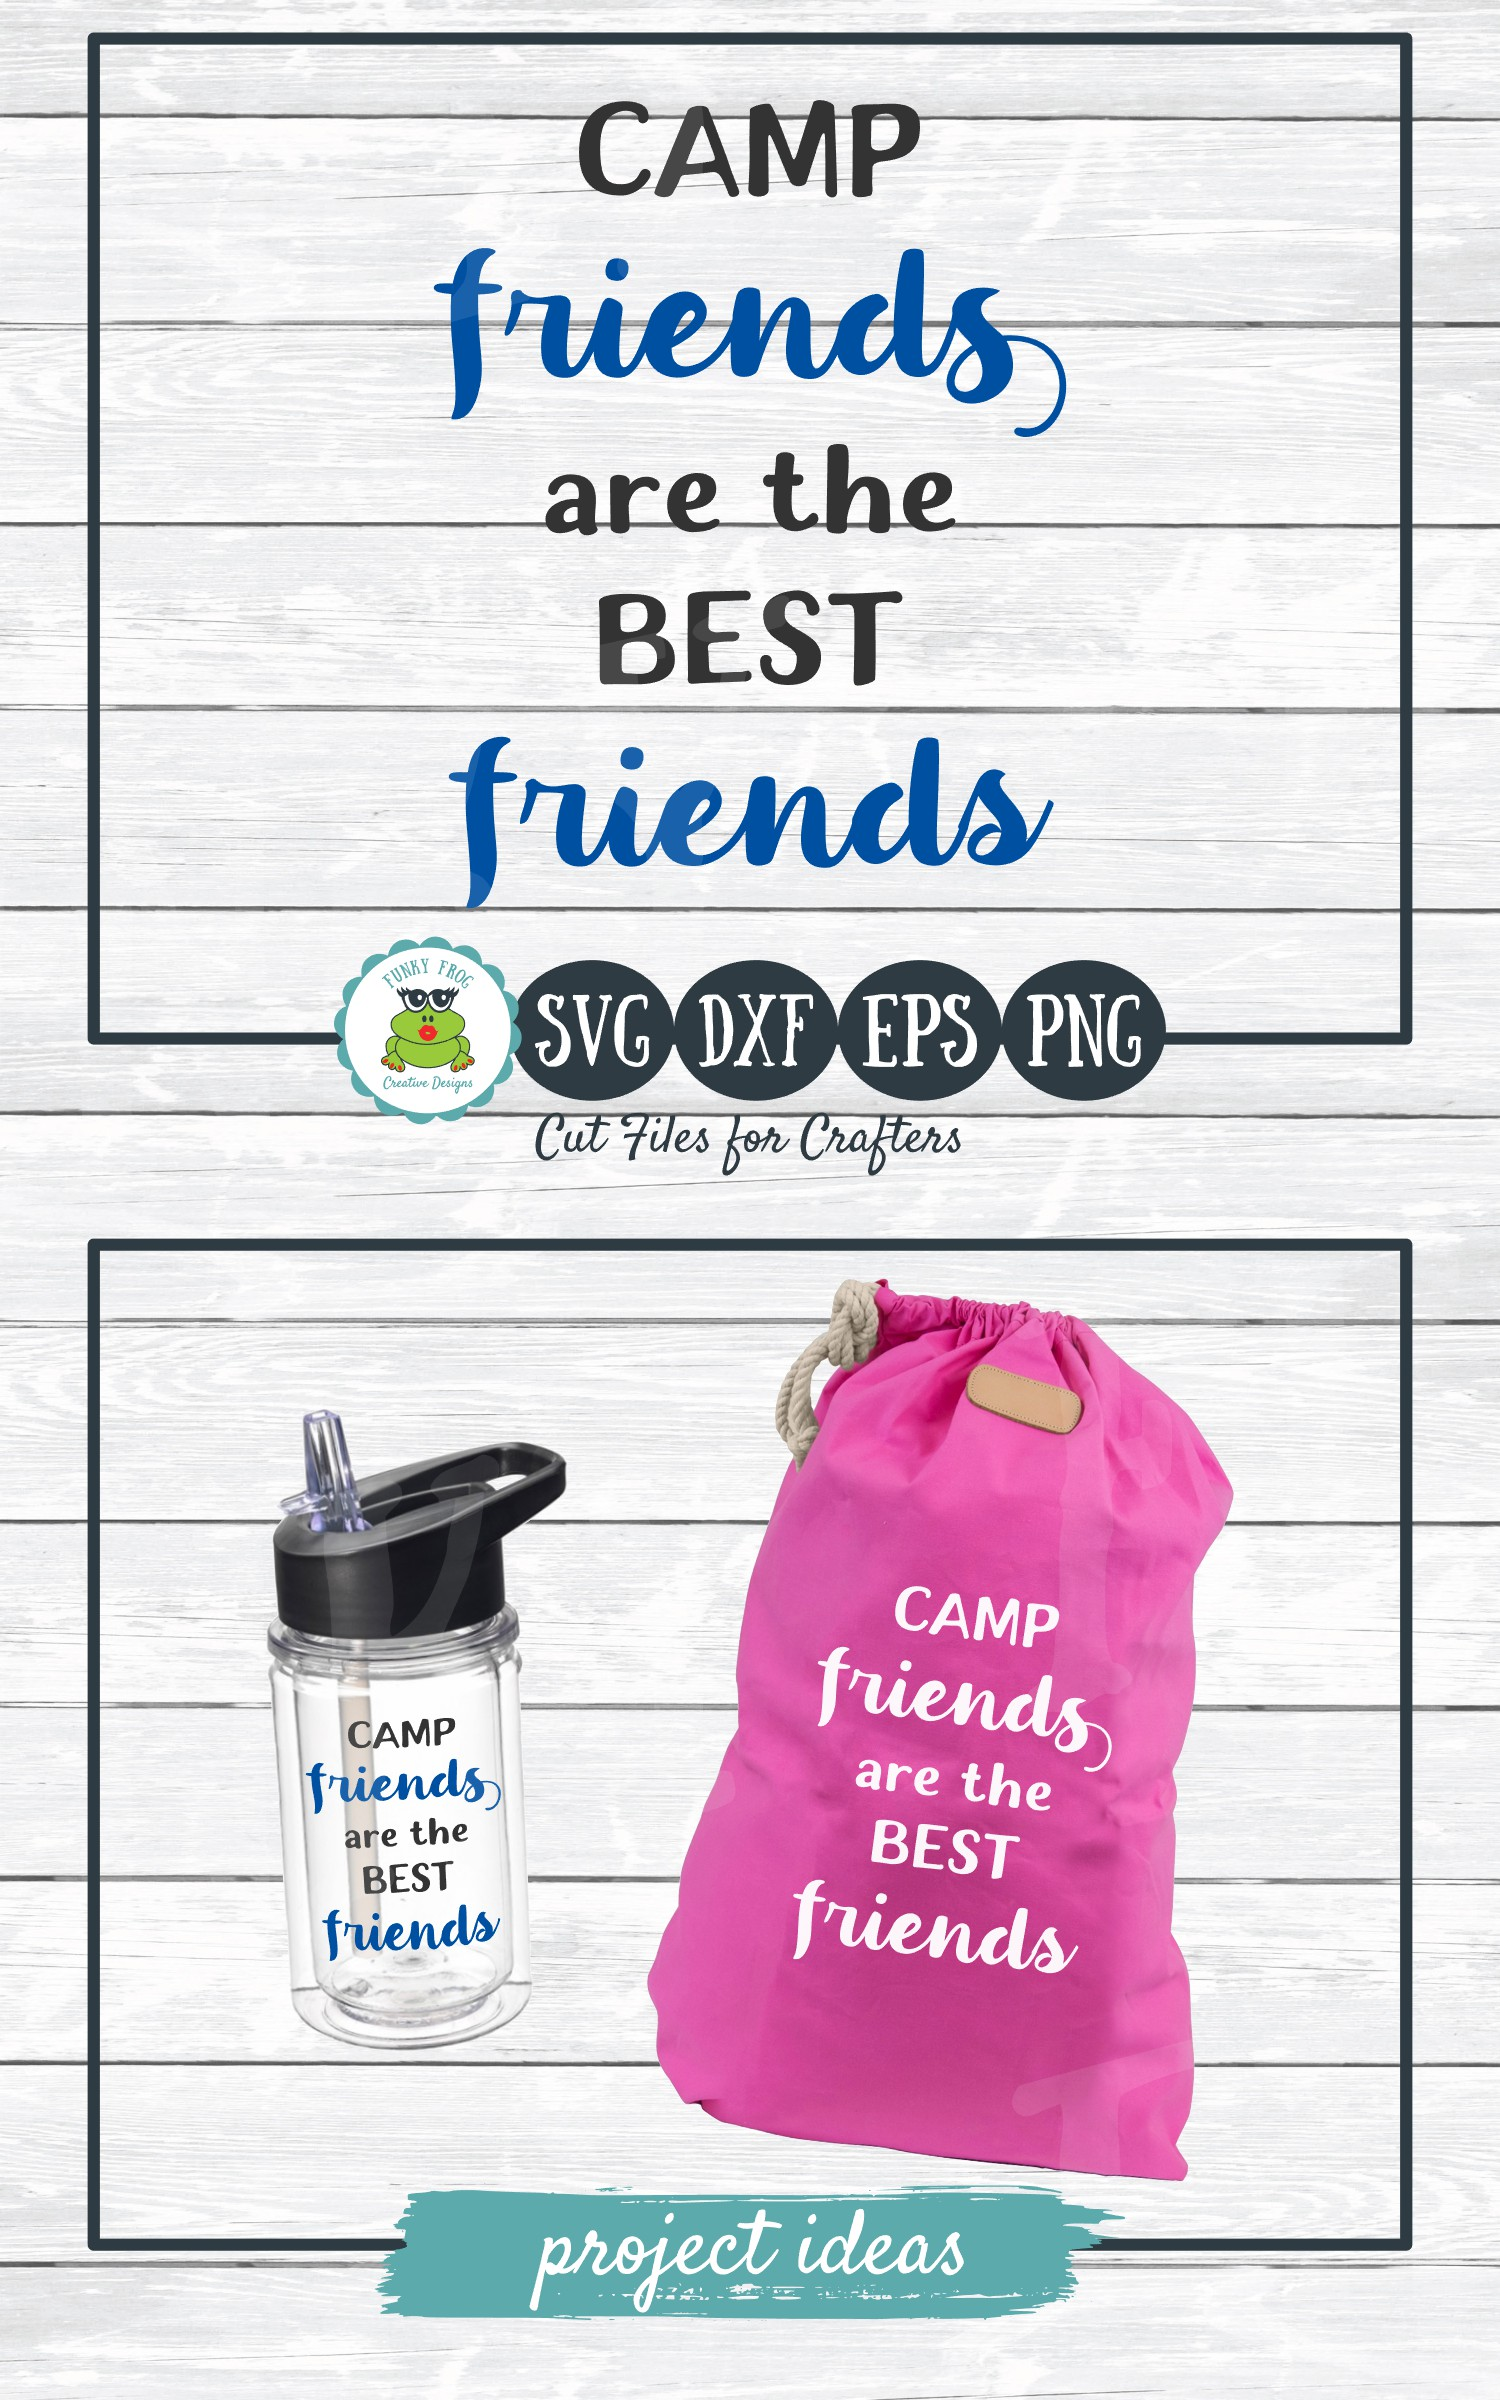 Camp Friends are the Best Friends, SVG Cut File for Crafters example image 4